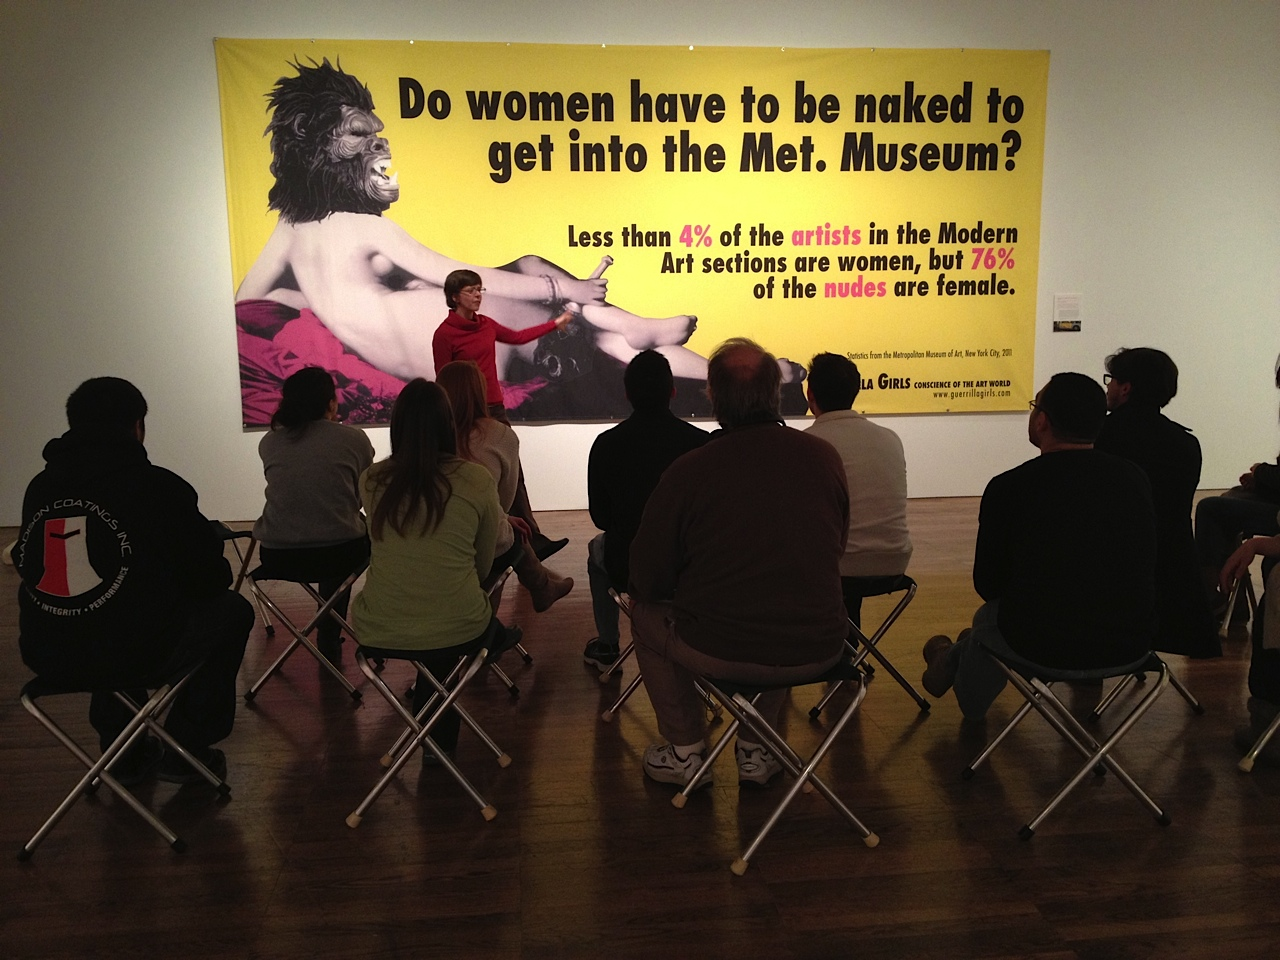 artworks guerrilla girls women have naked into museum